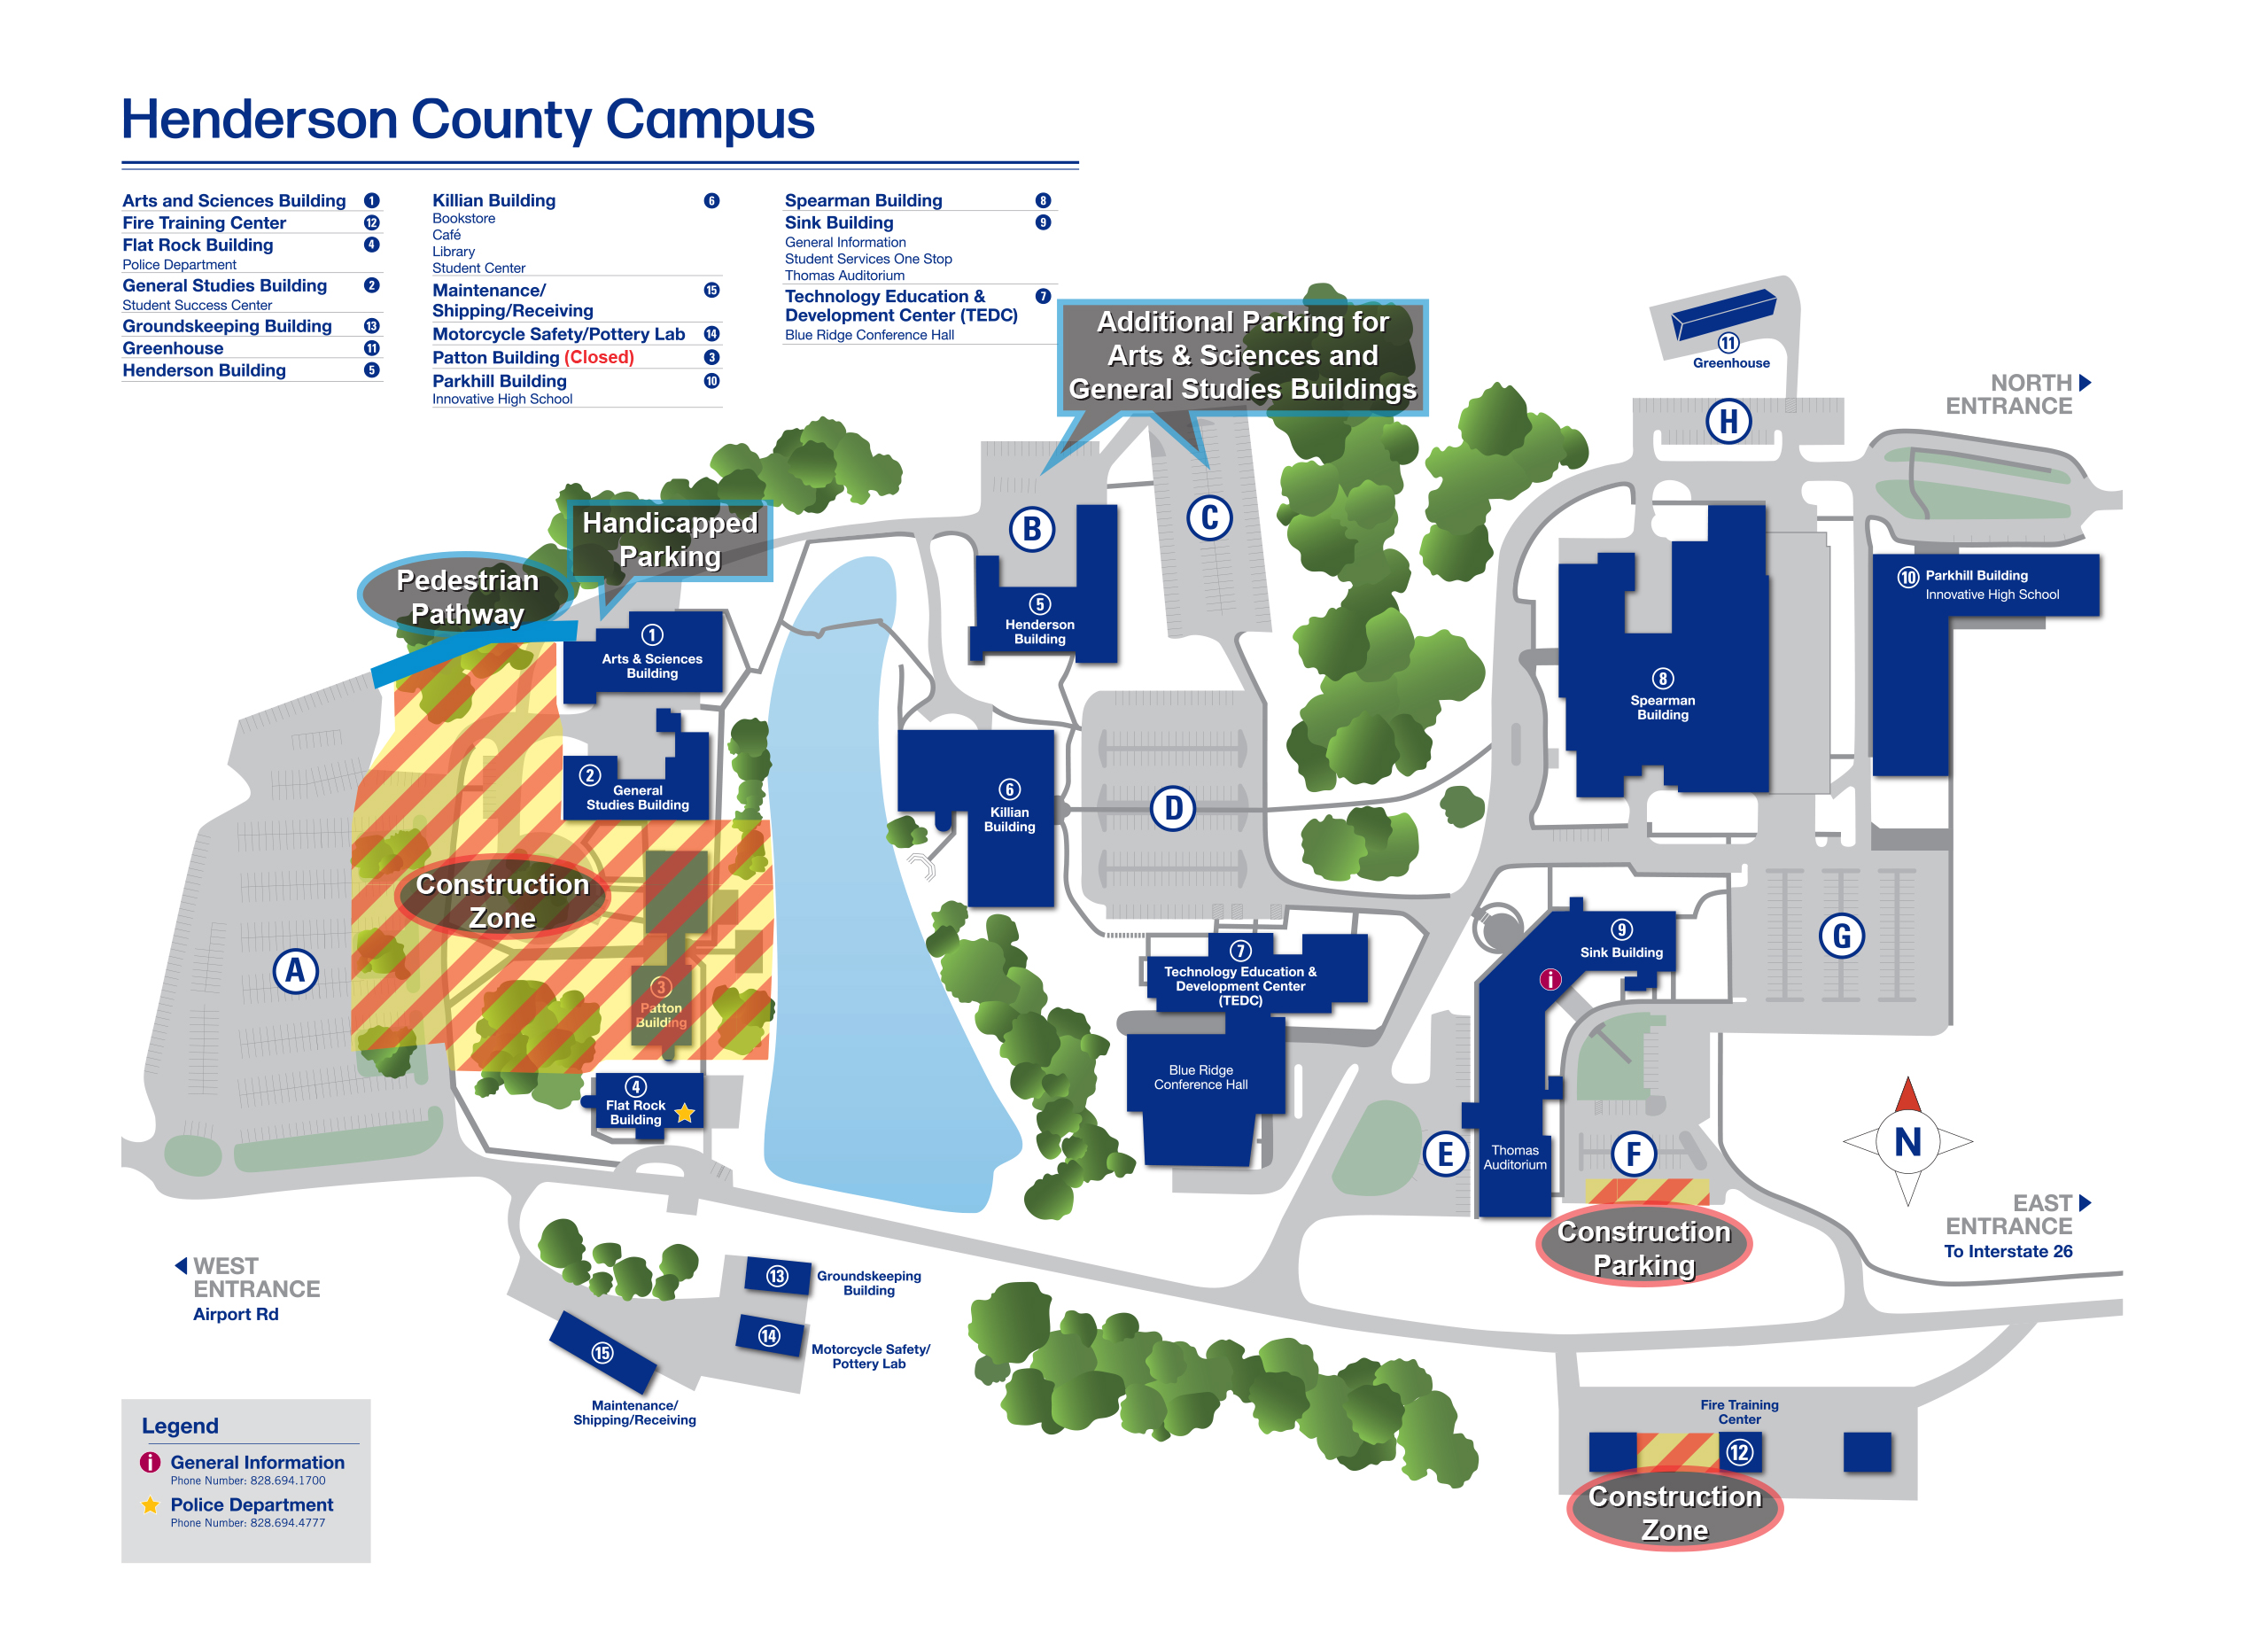 Blue Ridge Community College Campus Map (large) shows areas closed for construction